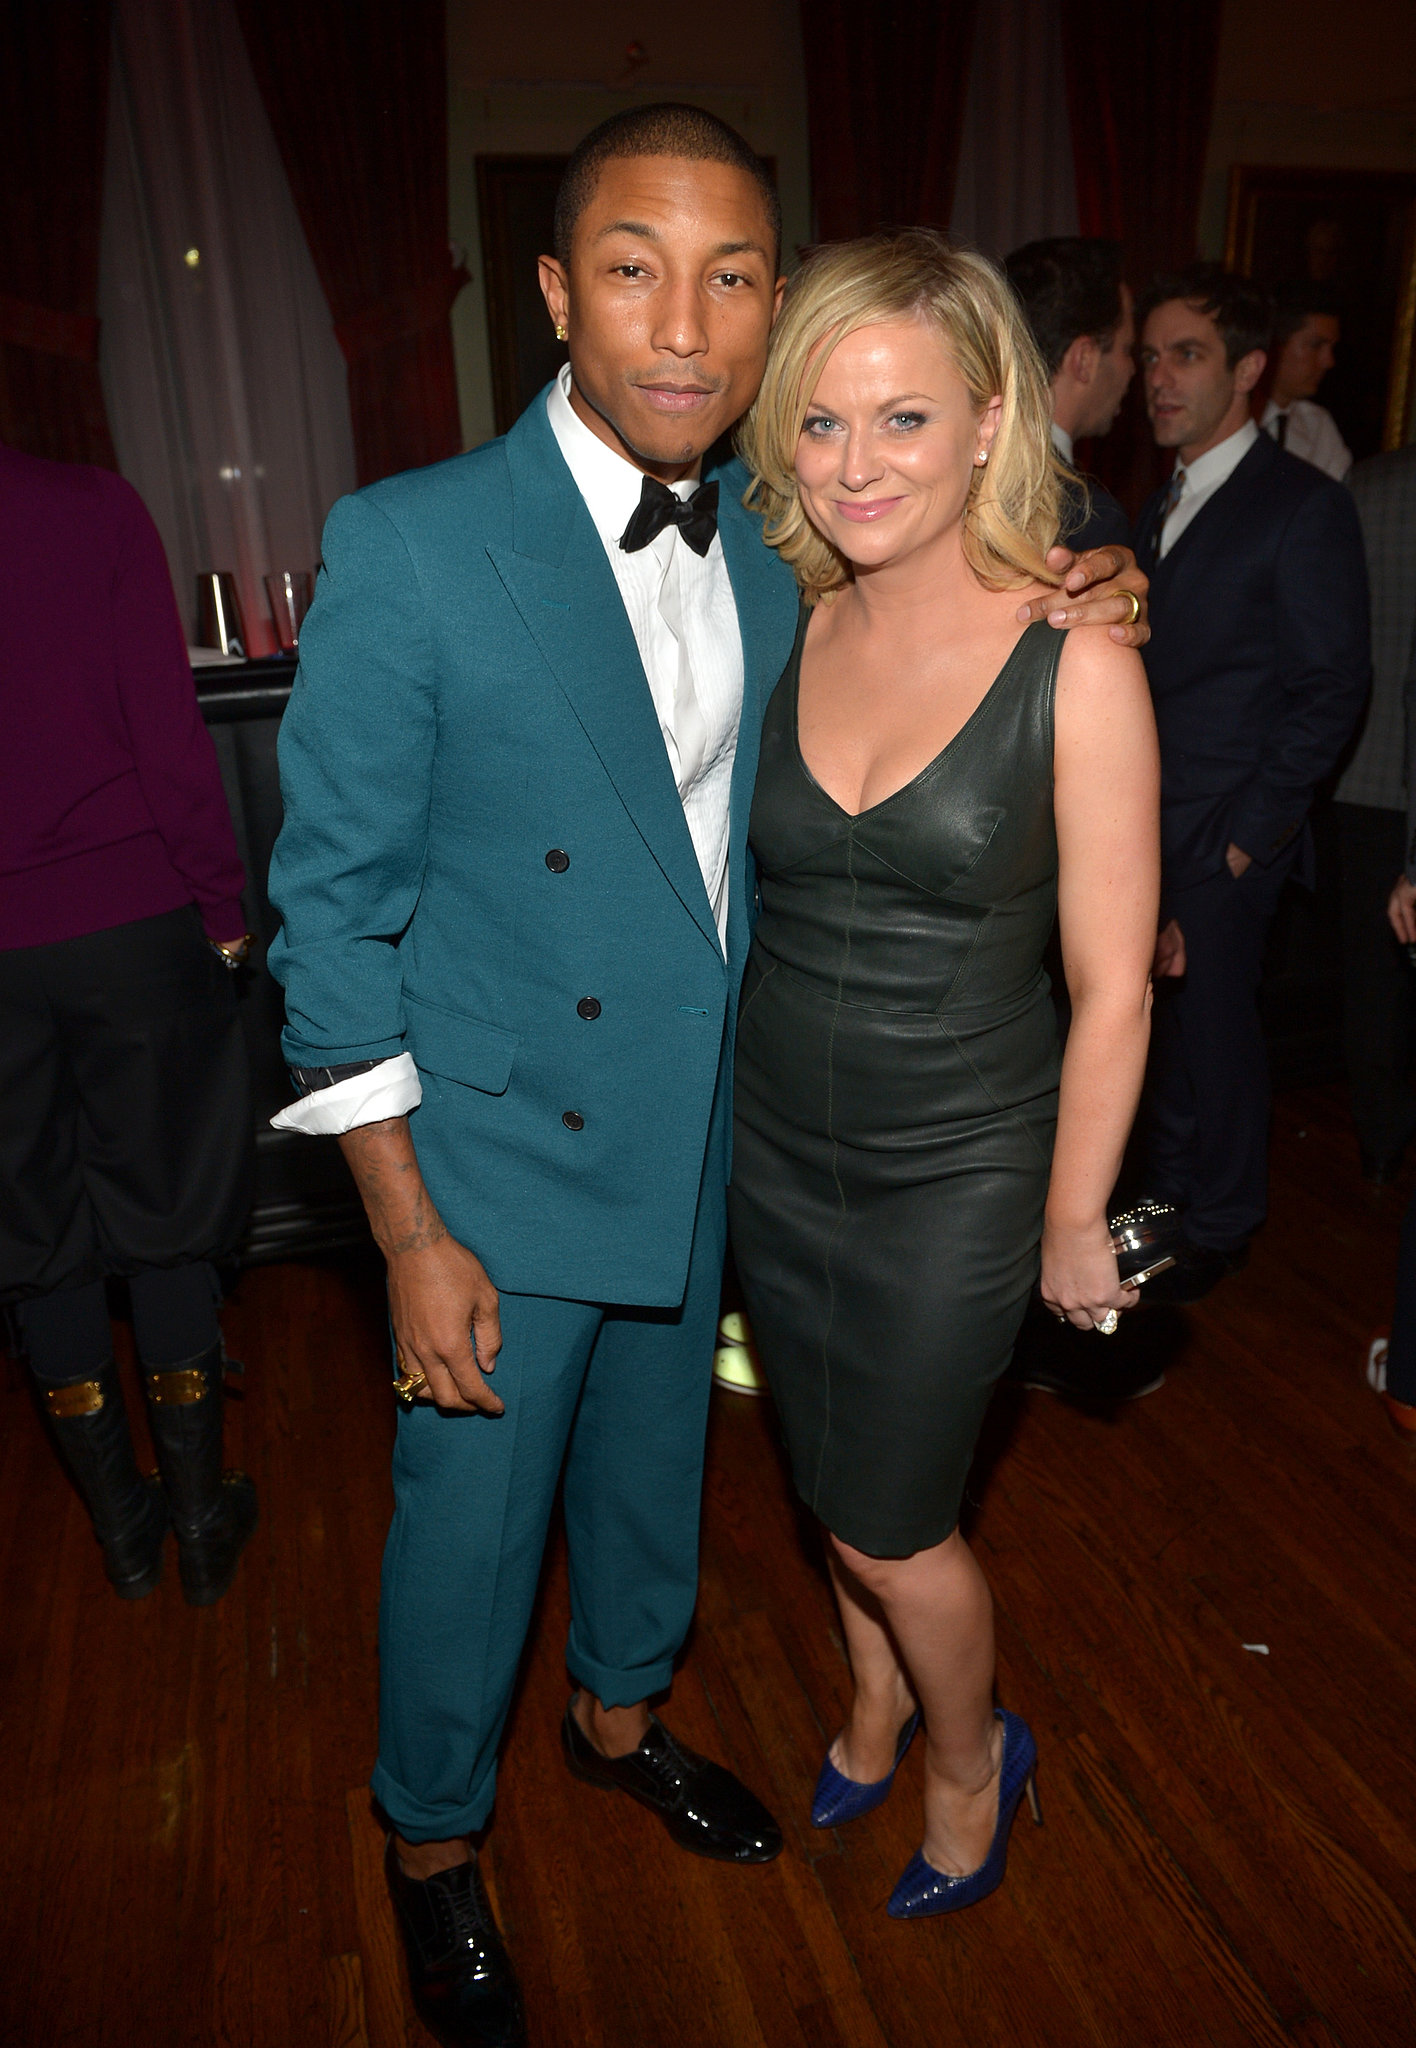 Pharrell Williams and Amy Poehler linked up inside the party.